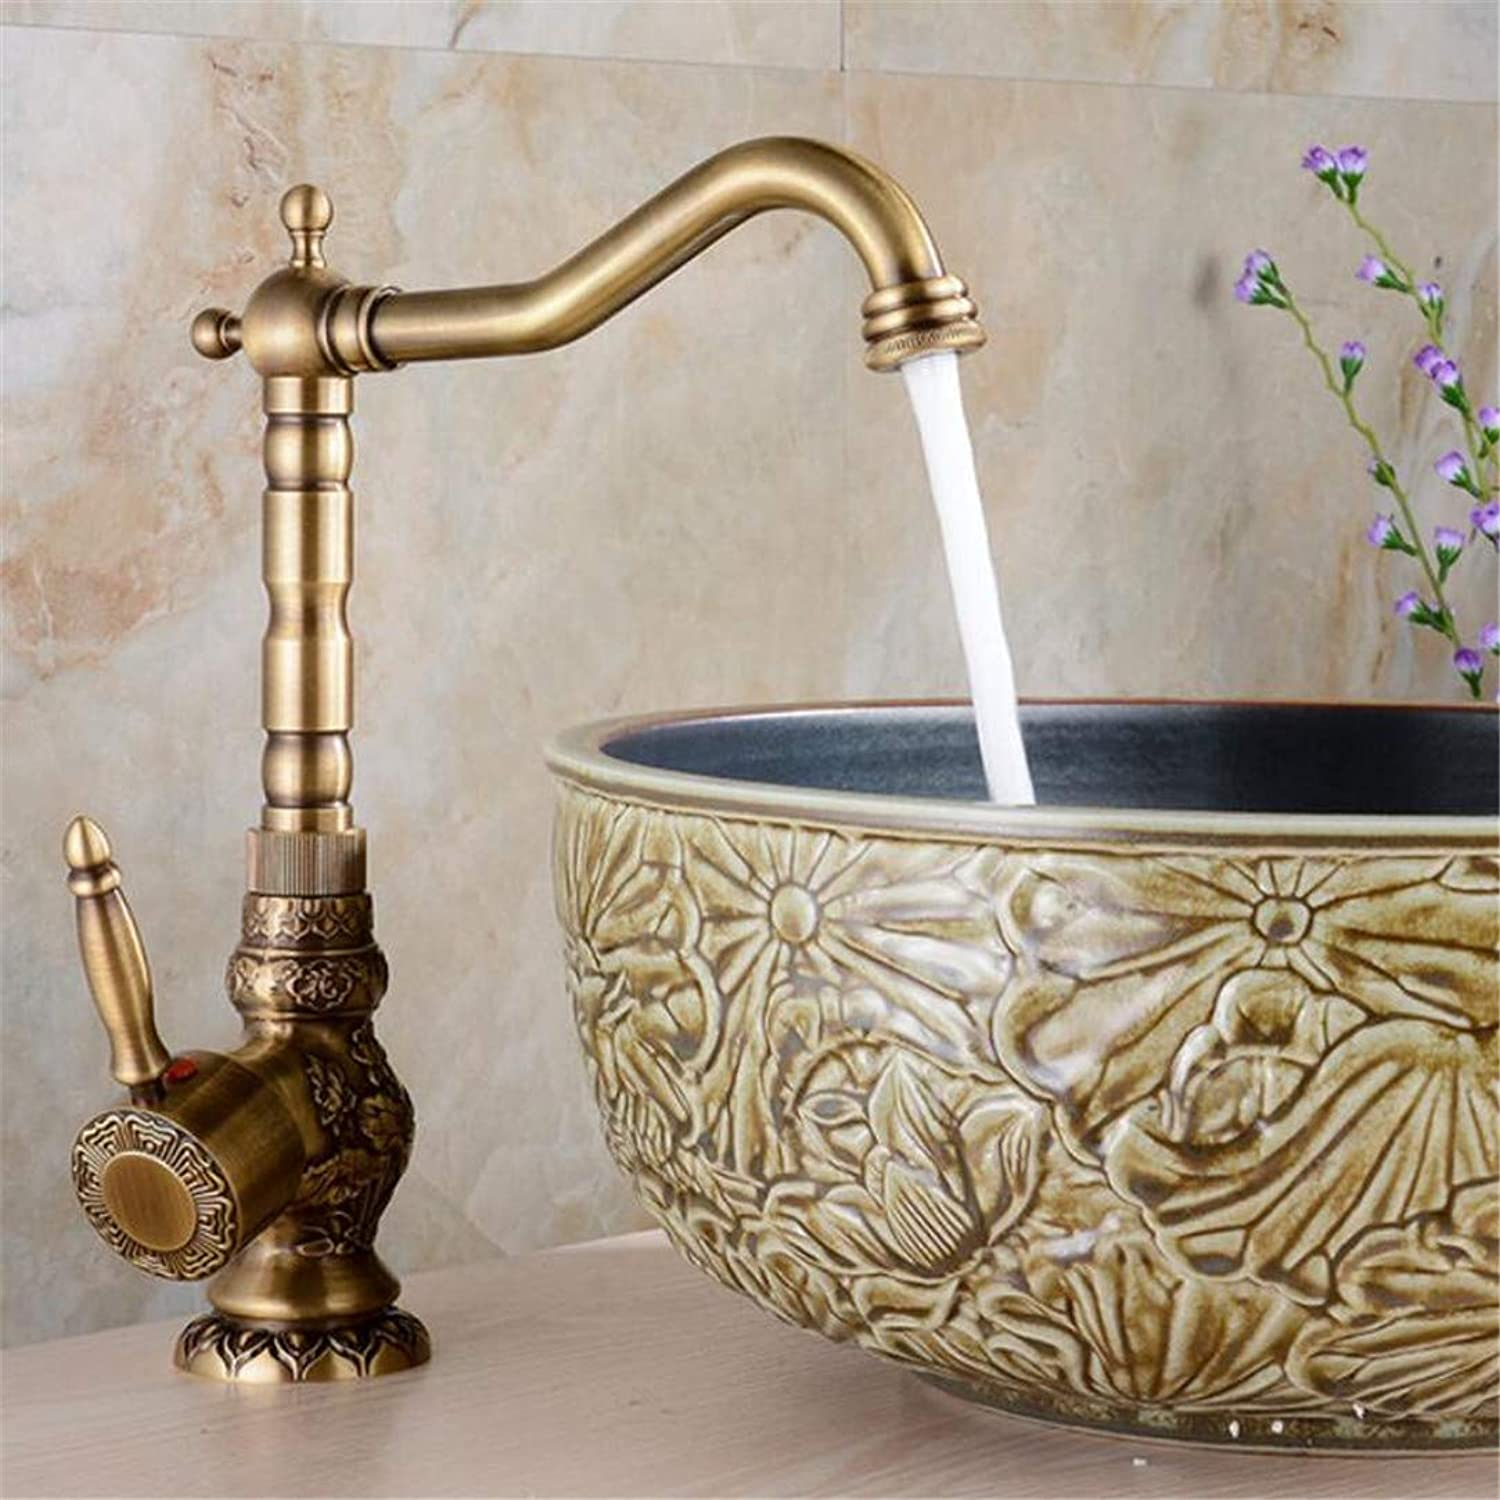 Faucet Retro Carved Basin Faucet redating Single Handle Tap Brass Bathroom Accessories